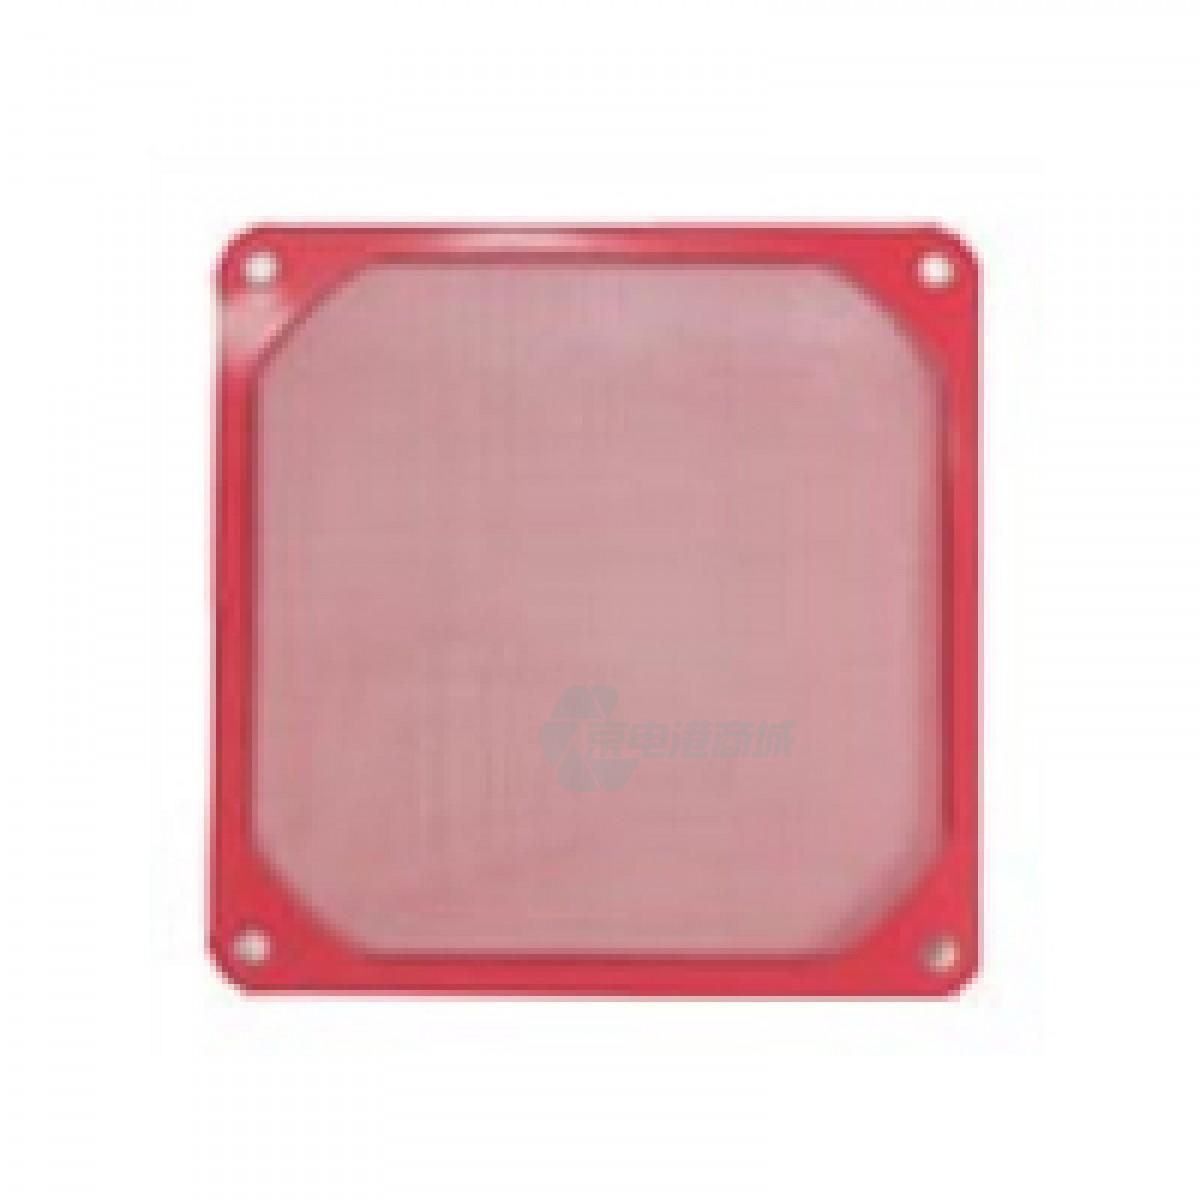 EVERCOOL FGF-90 / M 90x90mm METAL FILTER